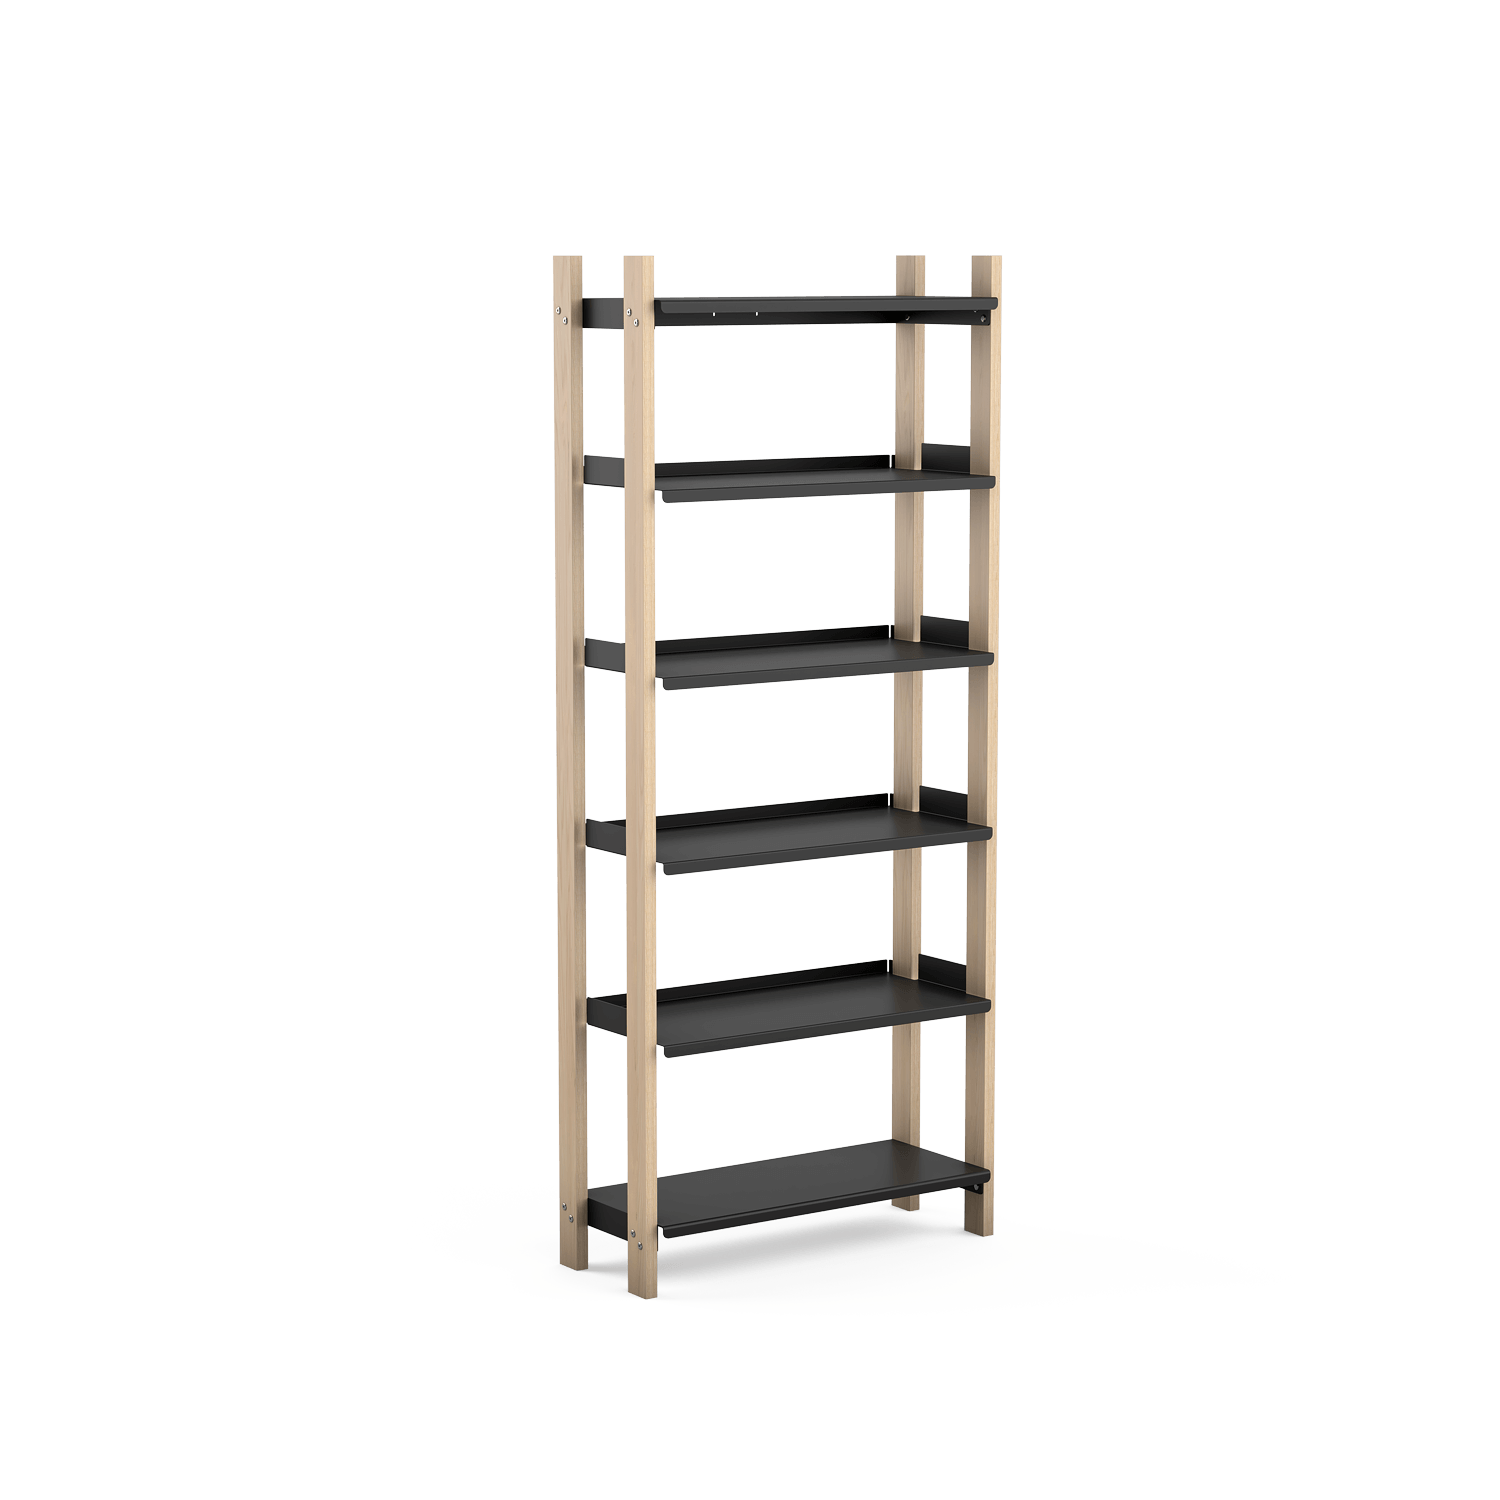 Rendering of the tall shelf